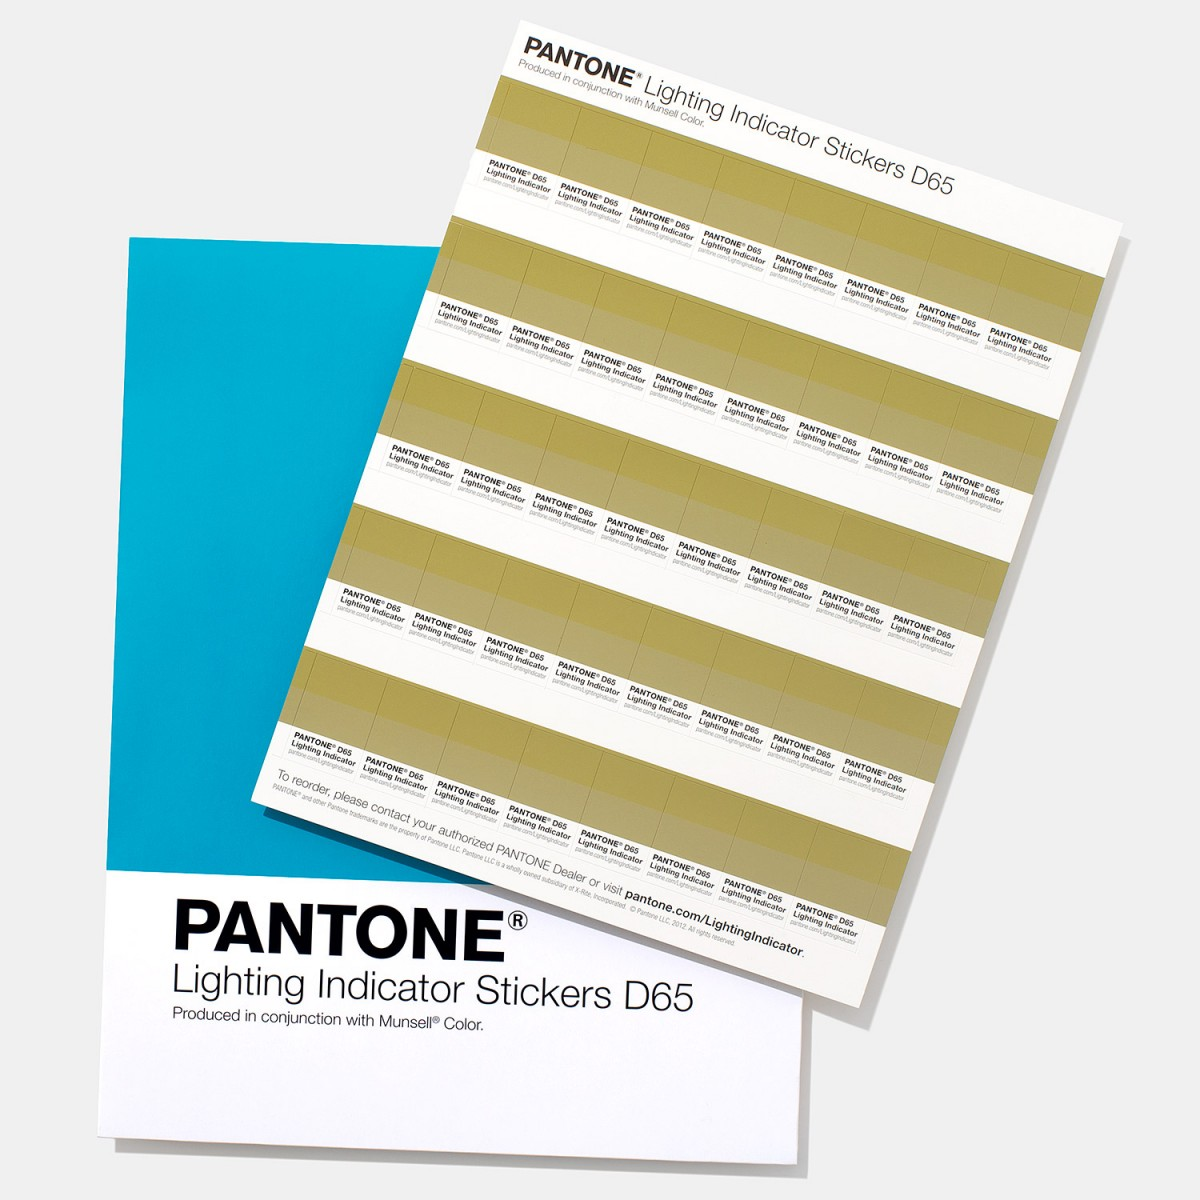 bang mau pantone - Pantone Lighting Indicator Stickers D65 (3)